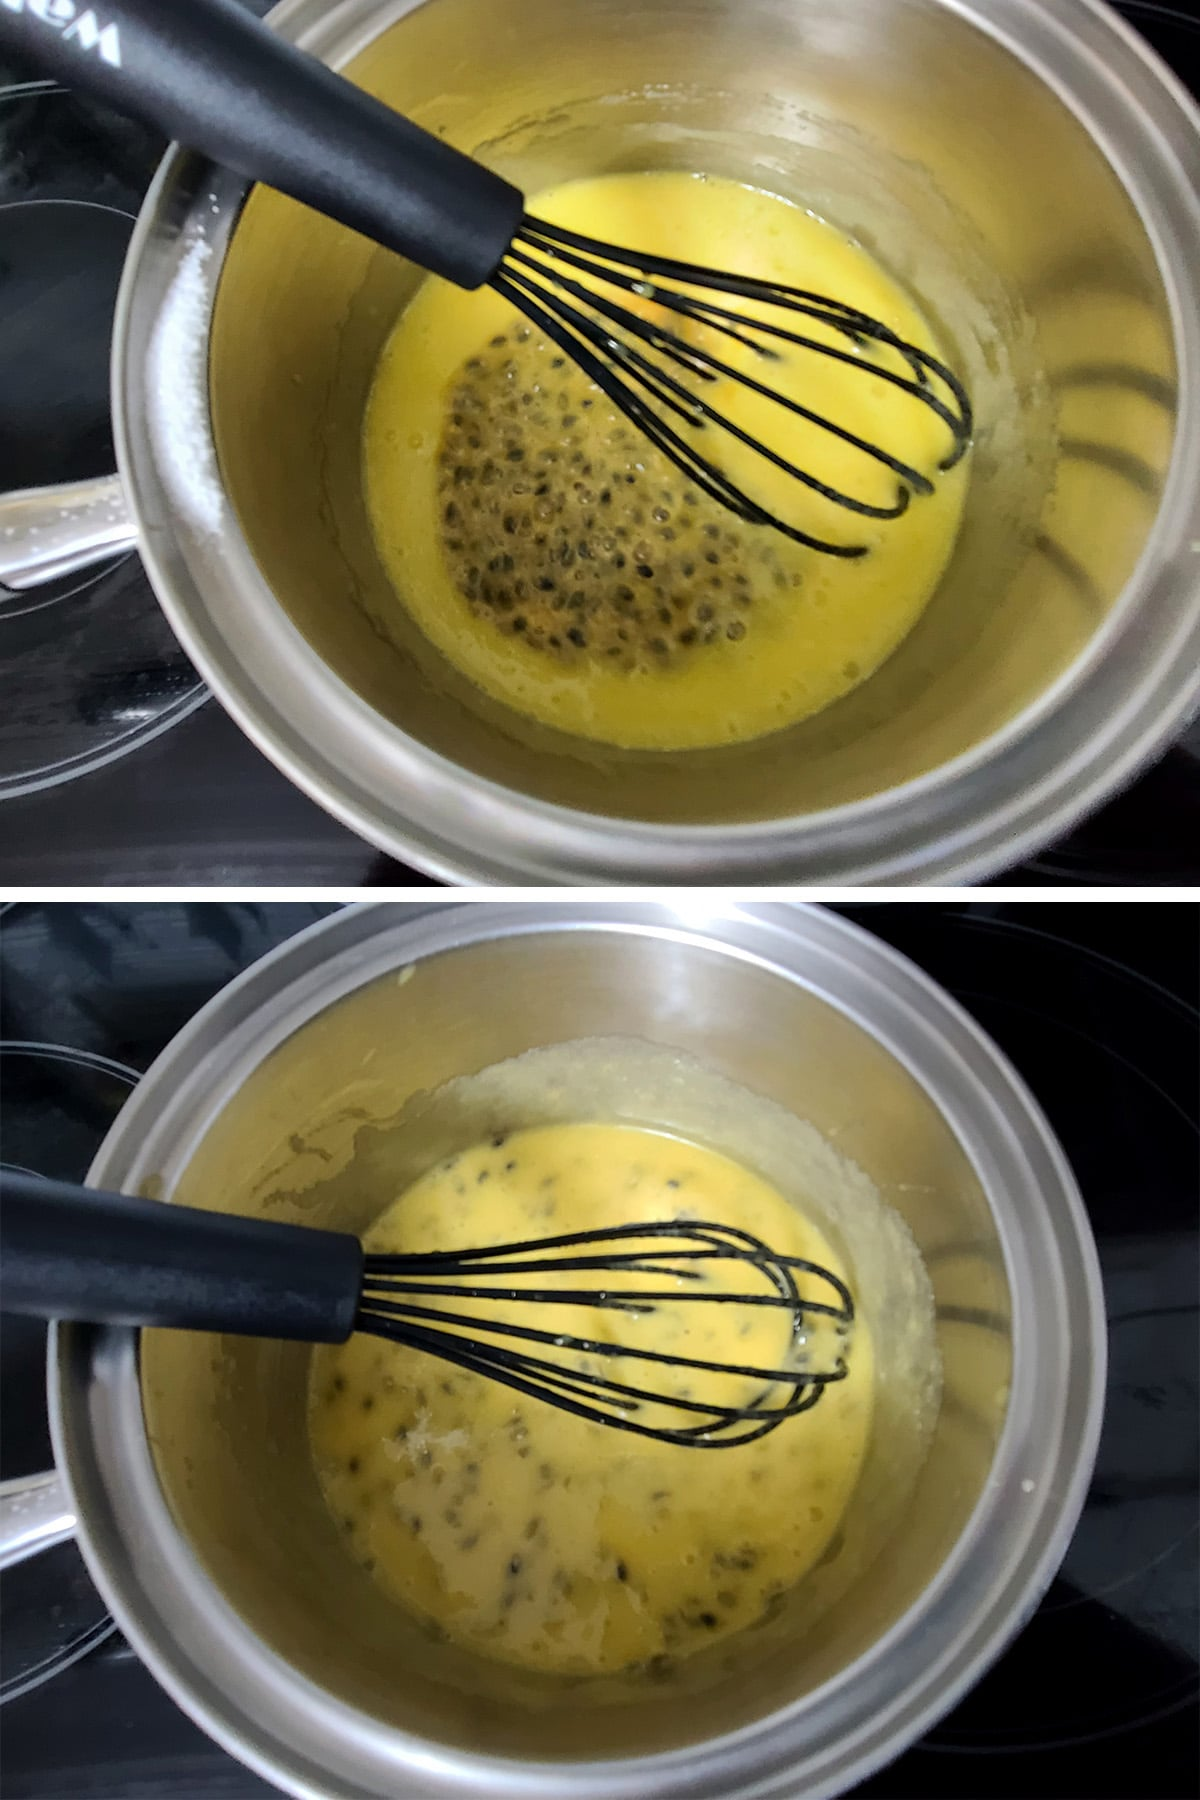 Passion fruit pulp being whisked into the egg and sugar mixture.